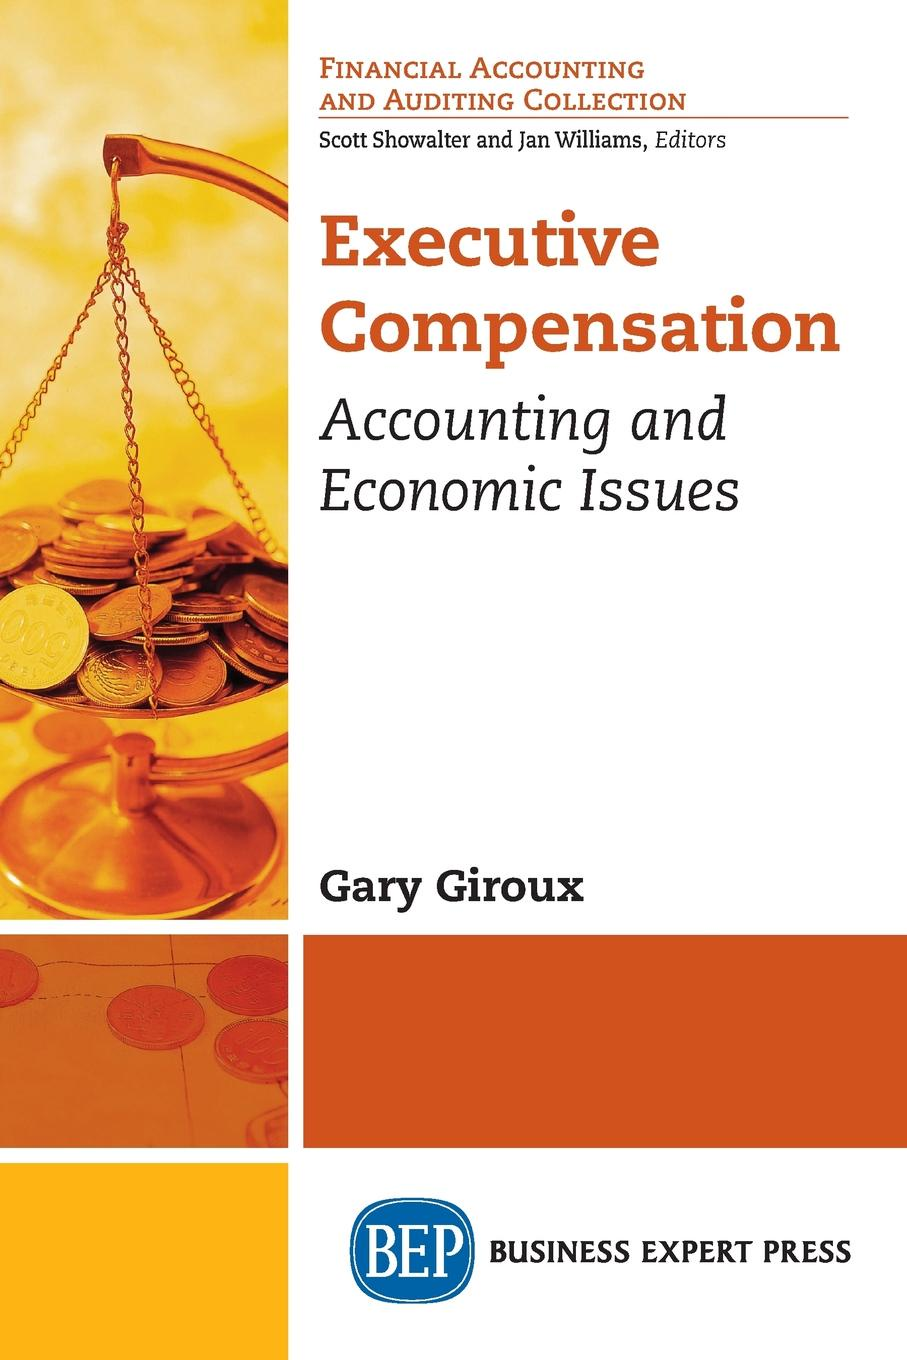 Gary Giroux Executive Compensation. Accounting and Economic Issues paul barshop capital projects what every executive needs to know to avoid costly mistakes and make major investments pay off